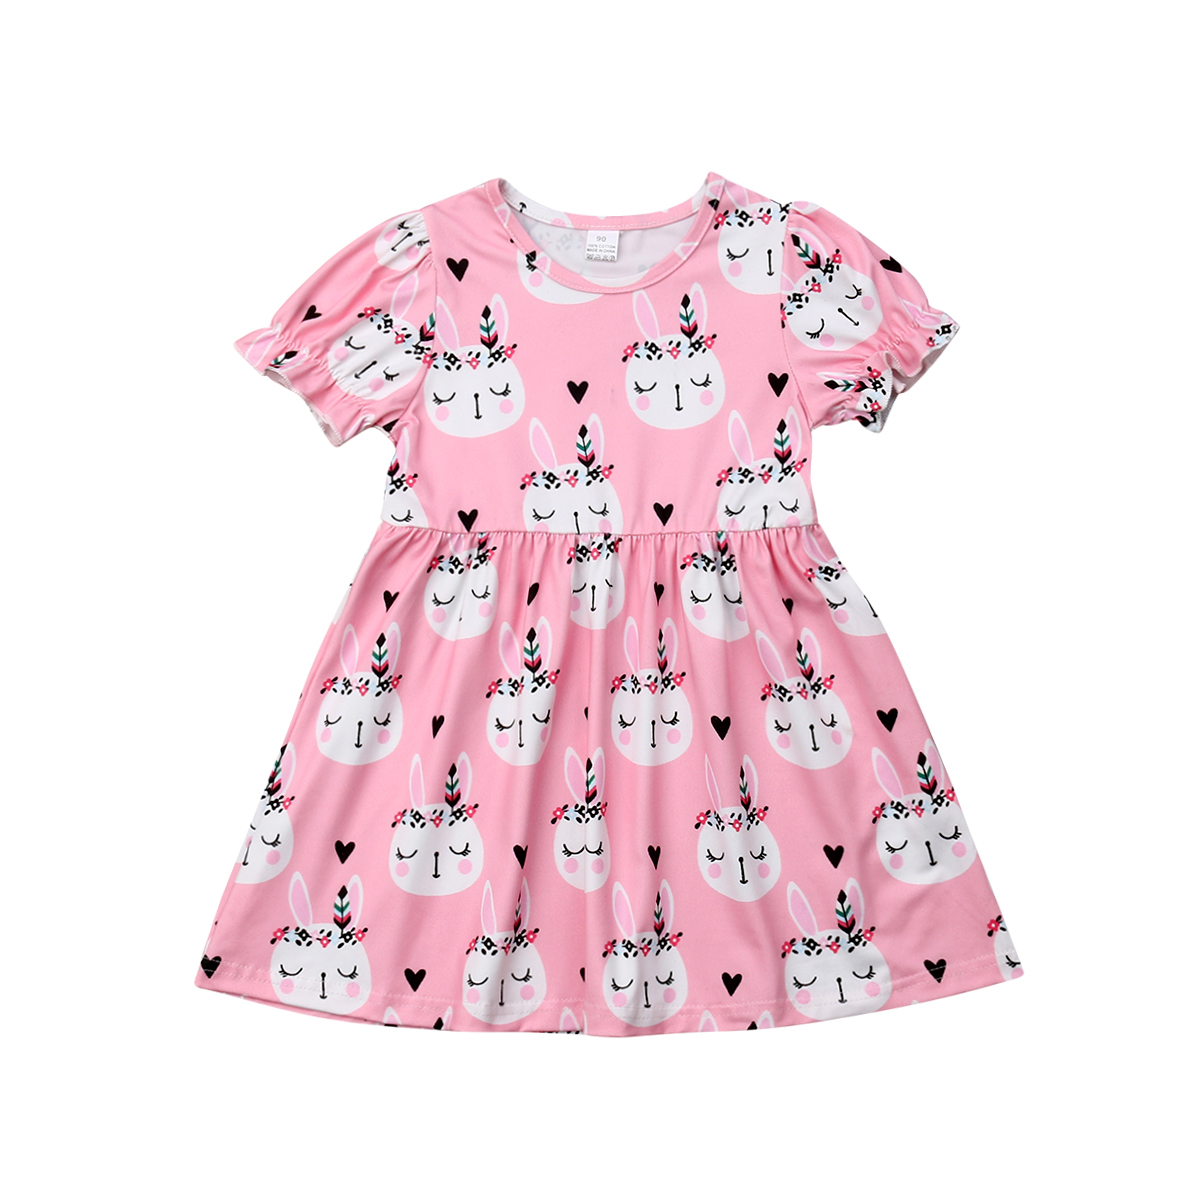 Pudcoco 2019 Brand New Newborn Kids Baby Girls Cotton Halloween Party Tutu Dress Sundress Clothes Good Reputation Over The World Mother & Kids Clothing Sets